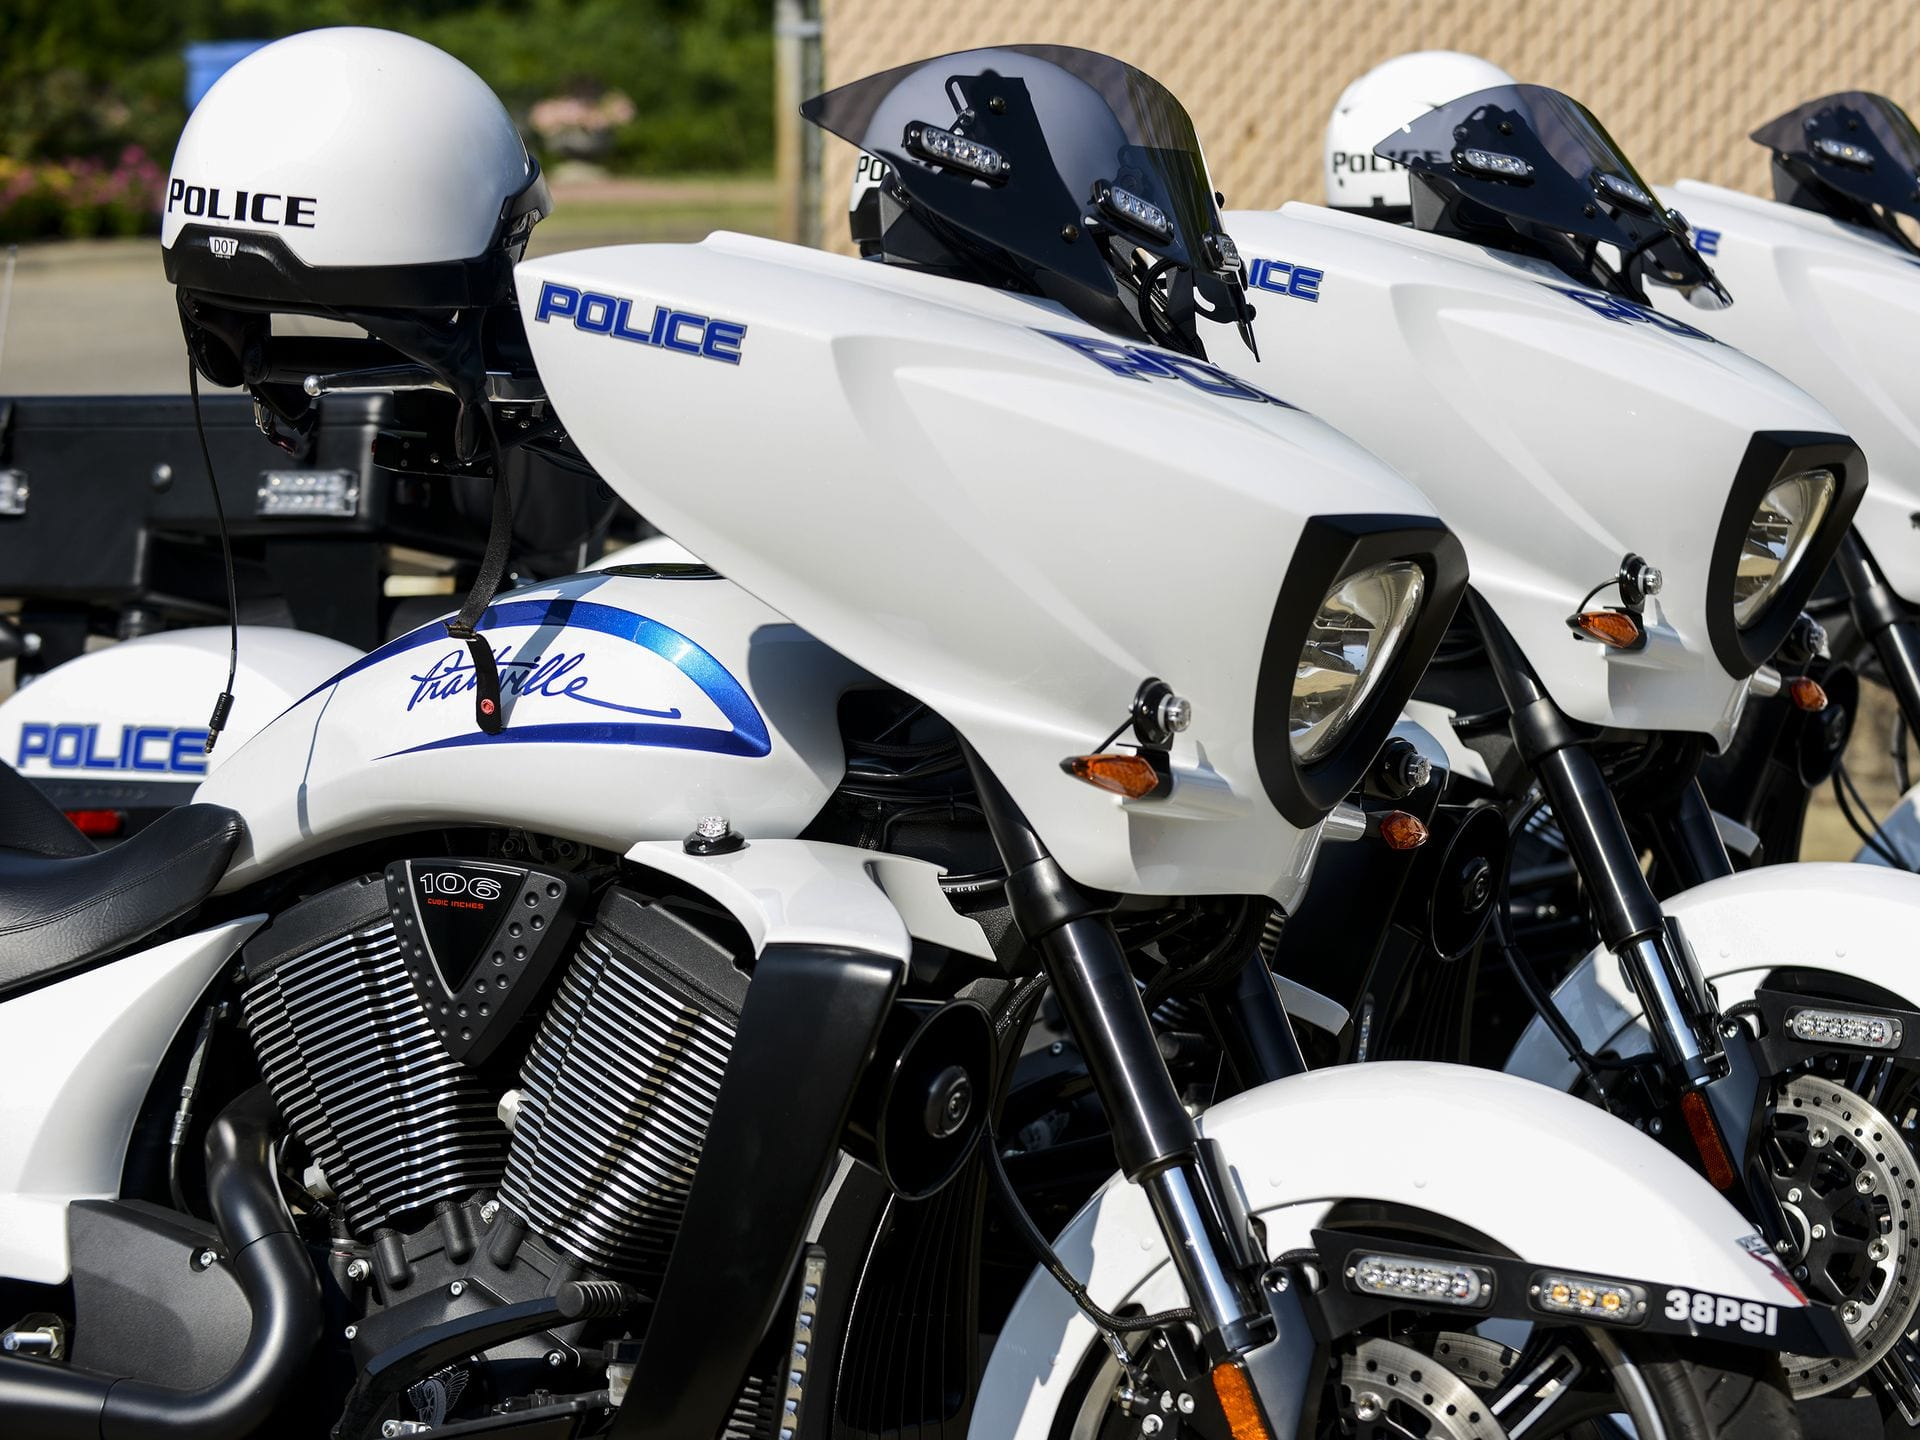 Prattville Victory Police Motorcycles